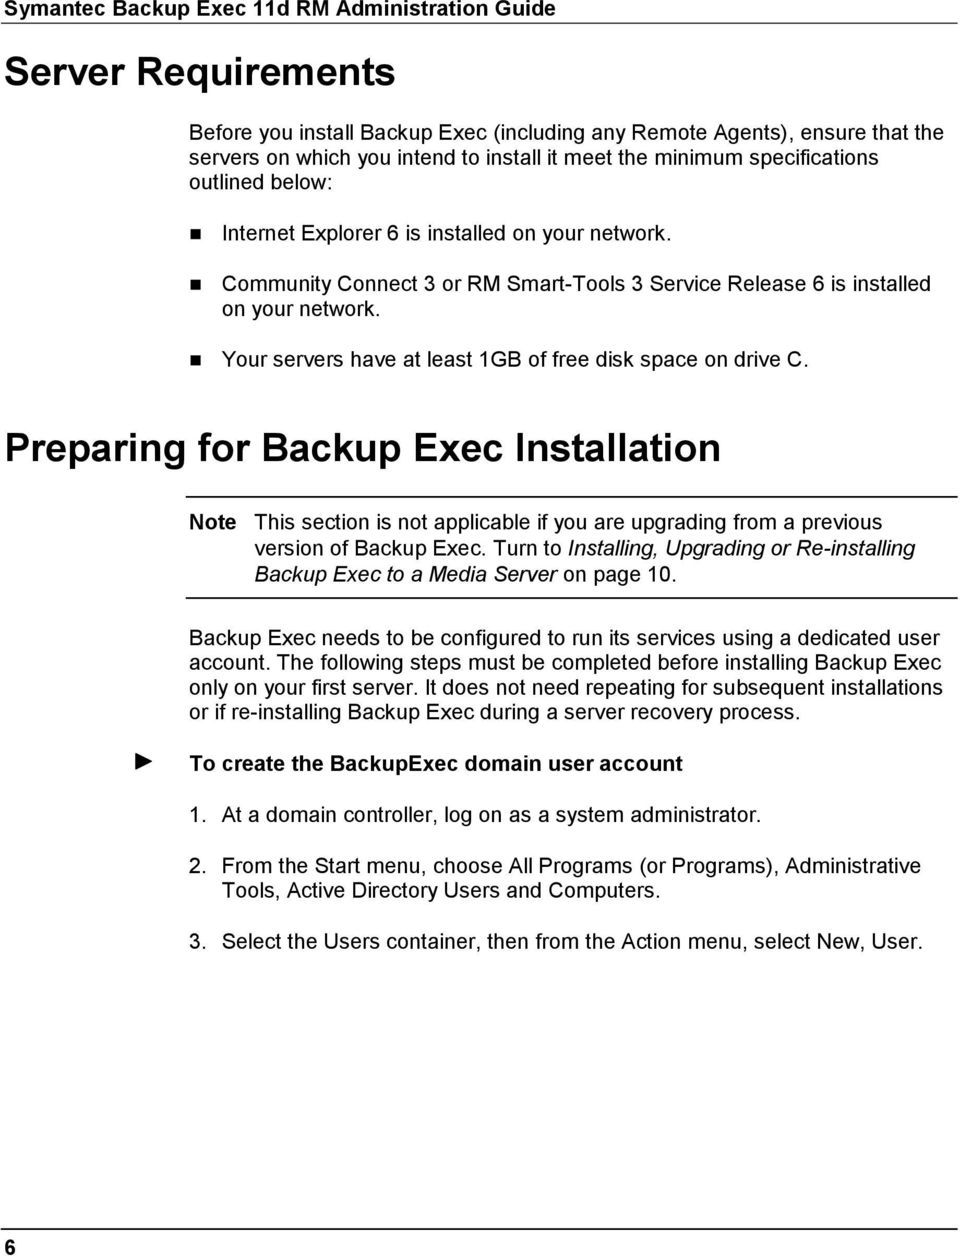 Your servers have at least 1GB of free disk space on drive C. Preparing for Backup Exec Installation Note This section is not applicable if you are upgrading from a previous version of Backup Exec.